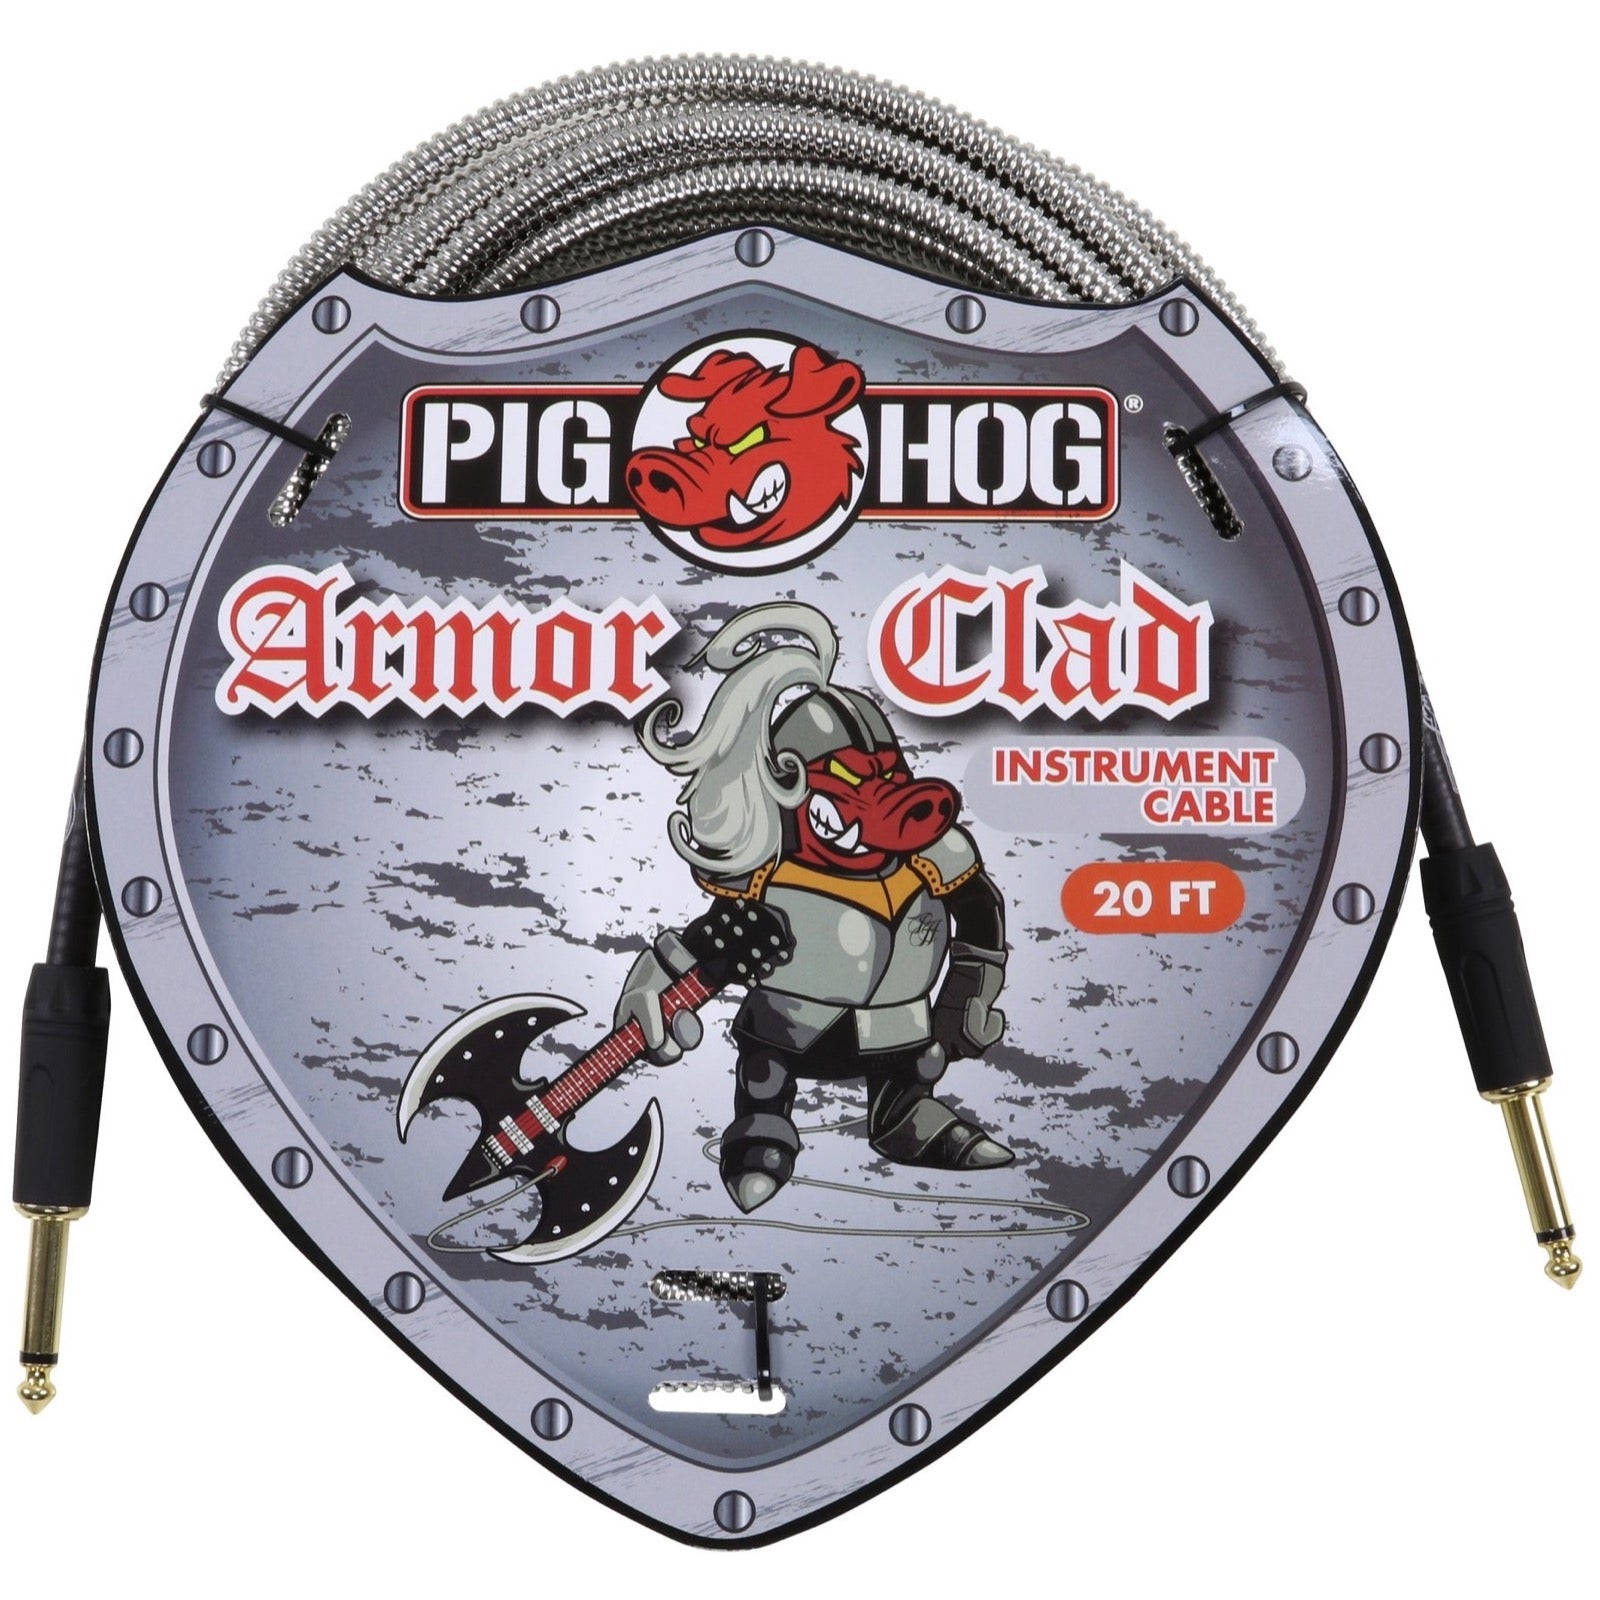 Pig Hog Armor Clad Instrument Cable, 20'